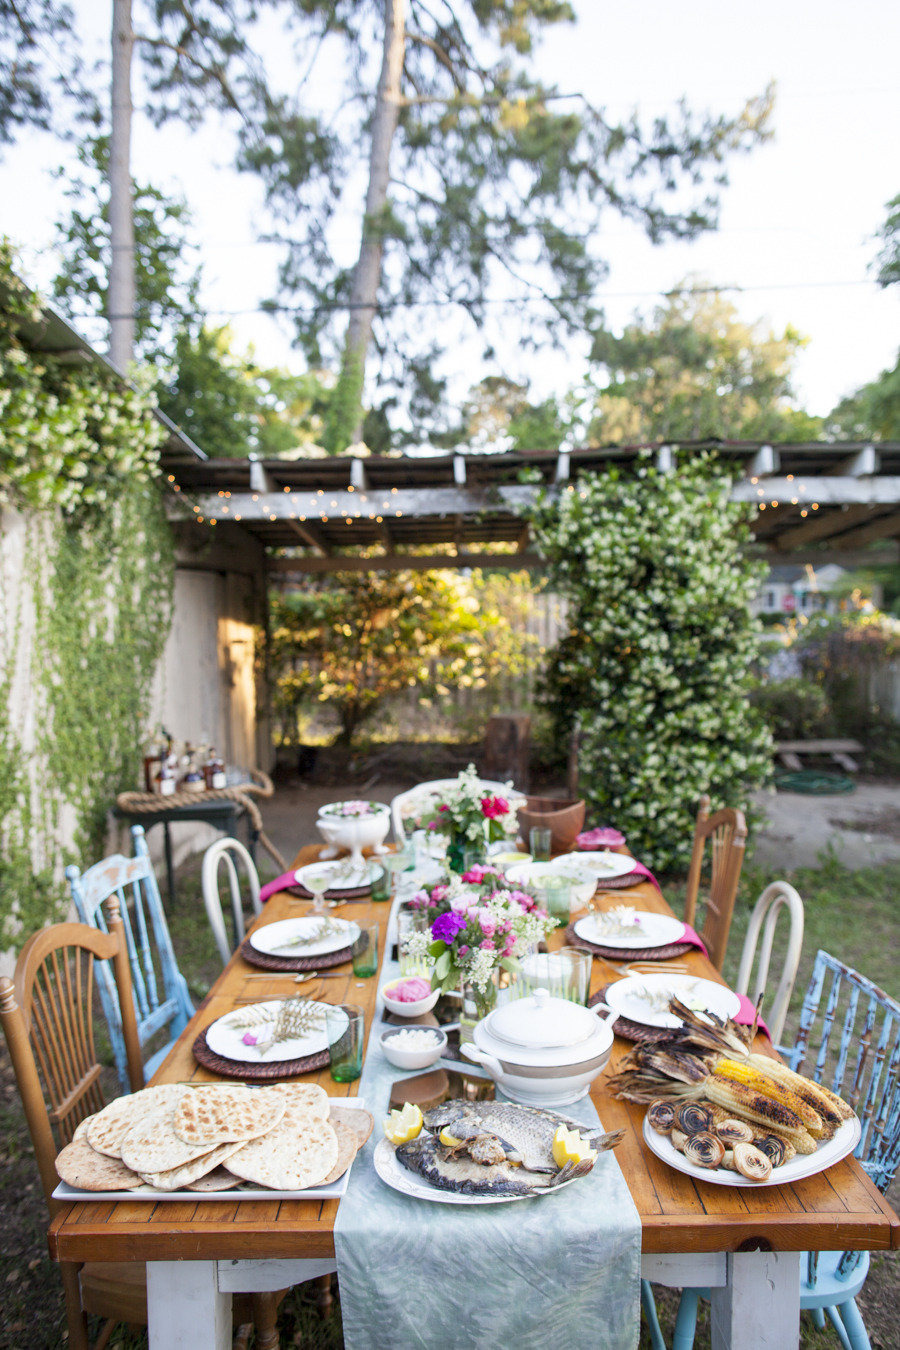 50 Outdoor Party Ideas You Should Try Out This Summer backyard beautiful party decoration love the rustic design